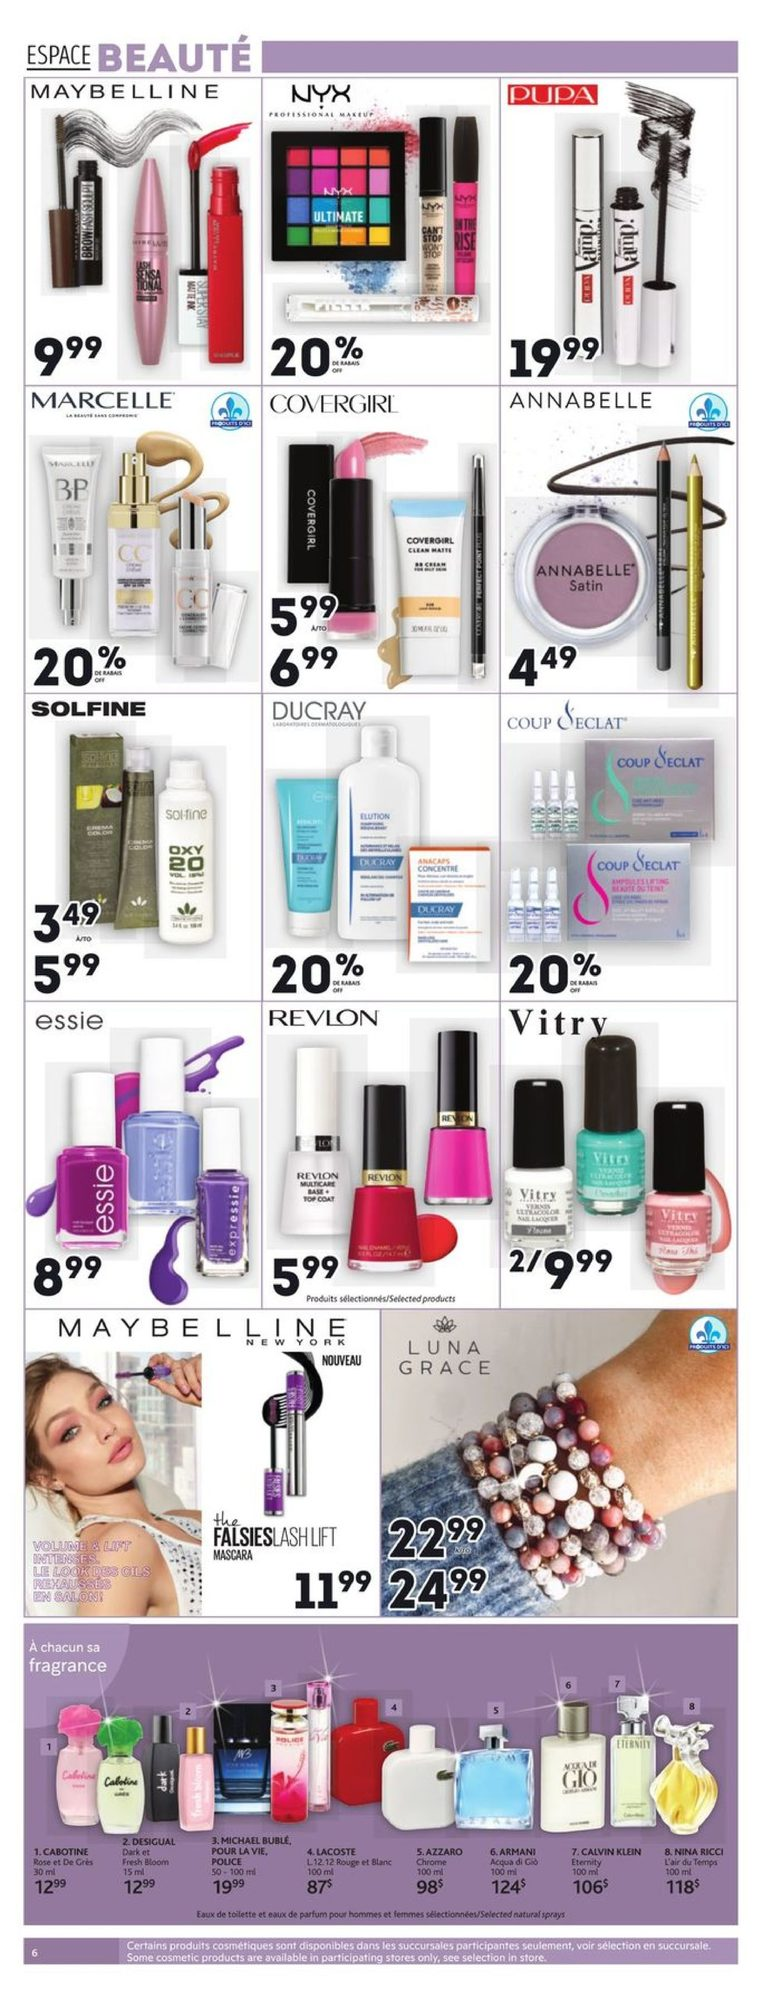 Brunet - Weekly Flyer Specials - Page 6